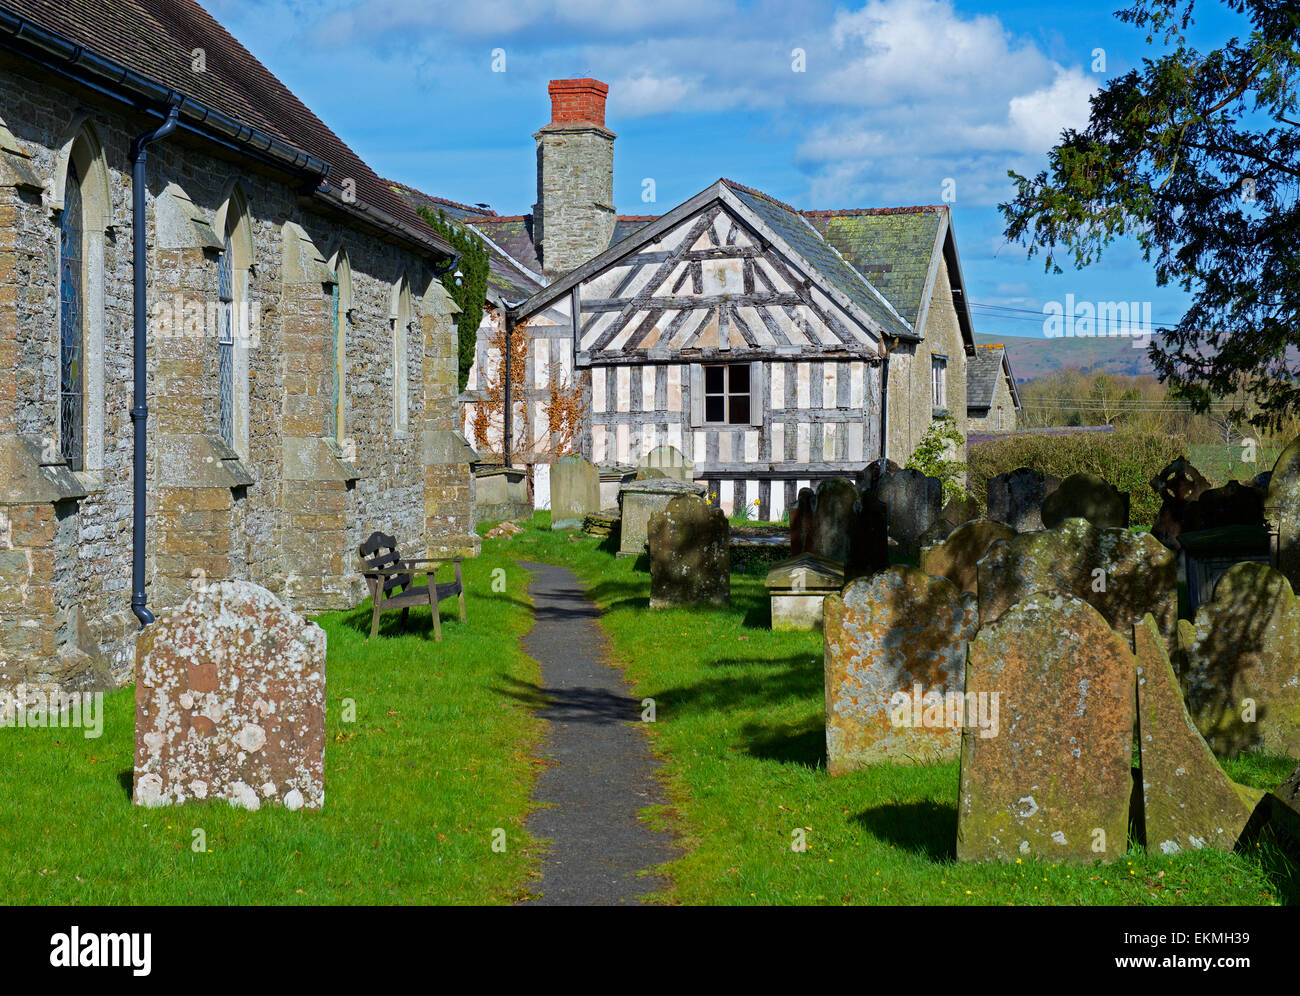 Church and half-timbered house in the village of More, Shropshire, England UK Stock Photo